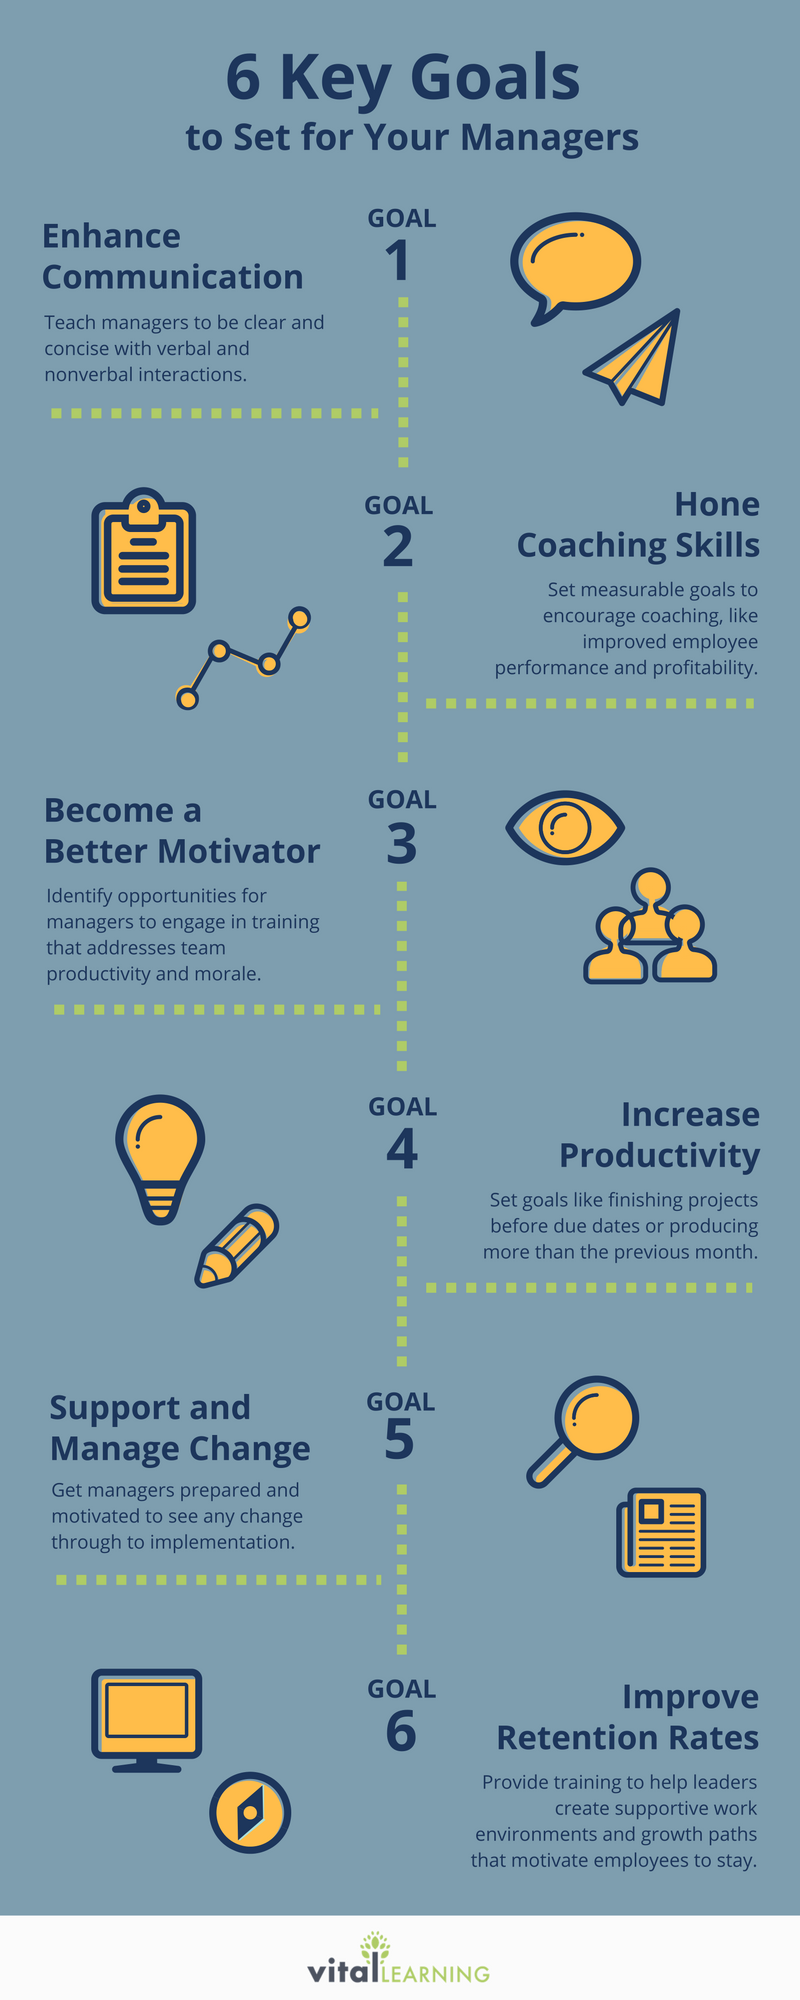 professional development goals to set for your managers 4 increase productivity among the many professional development goals